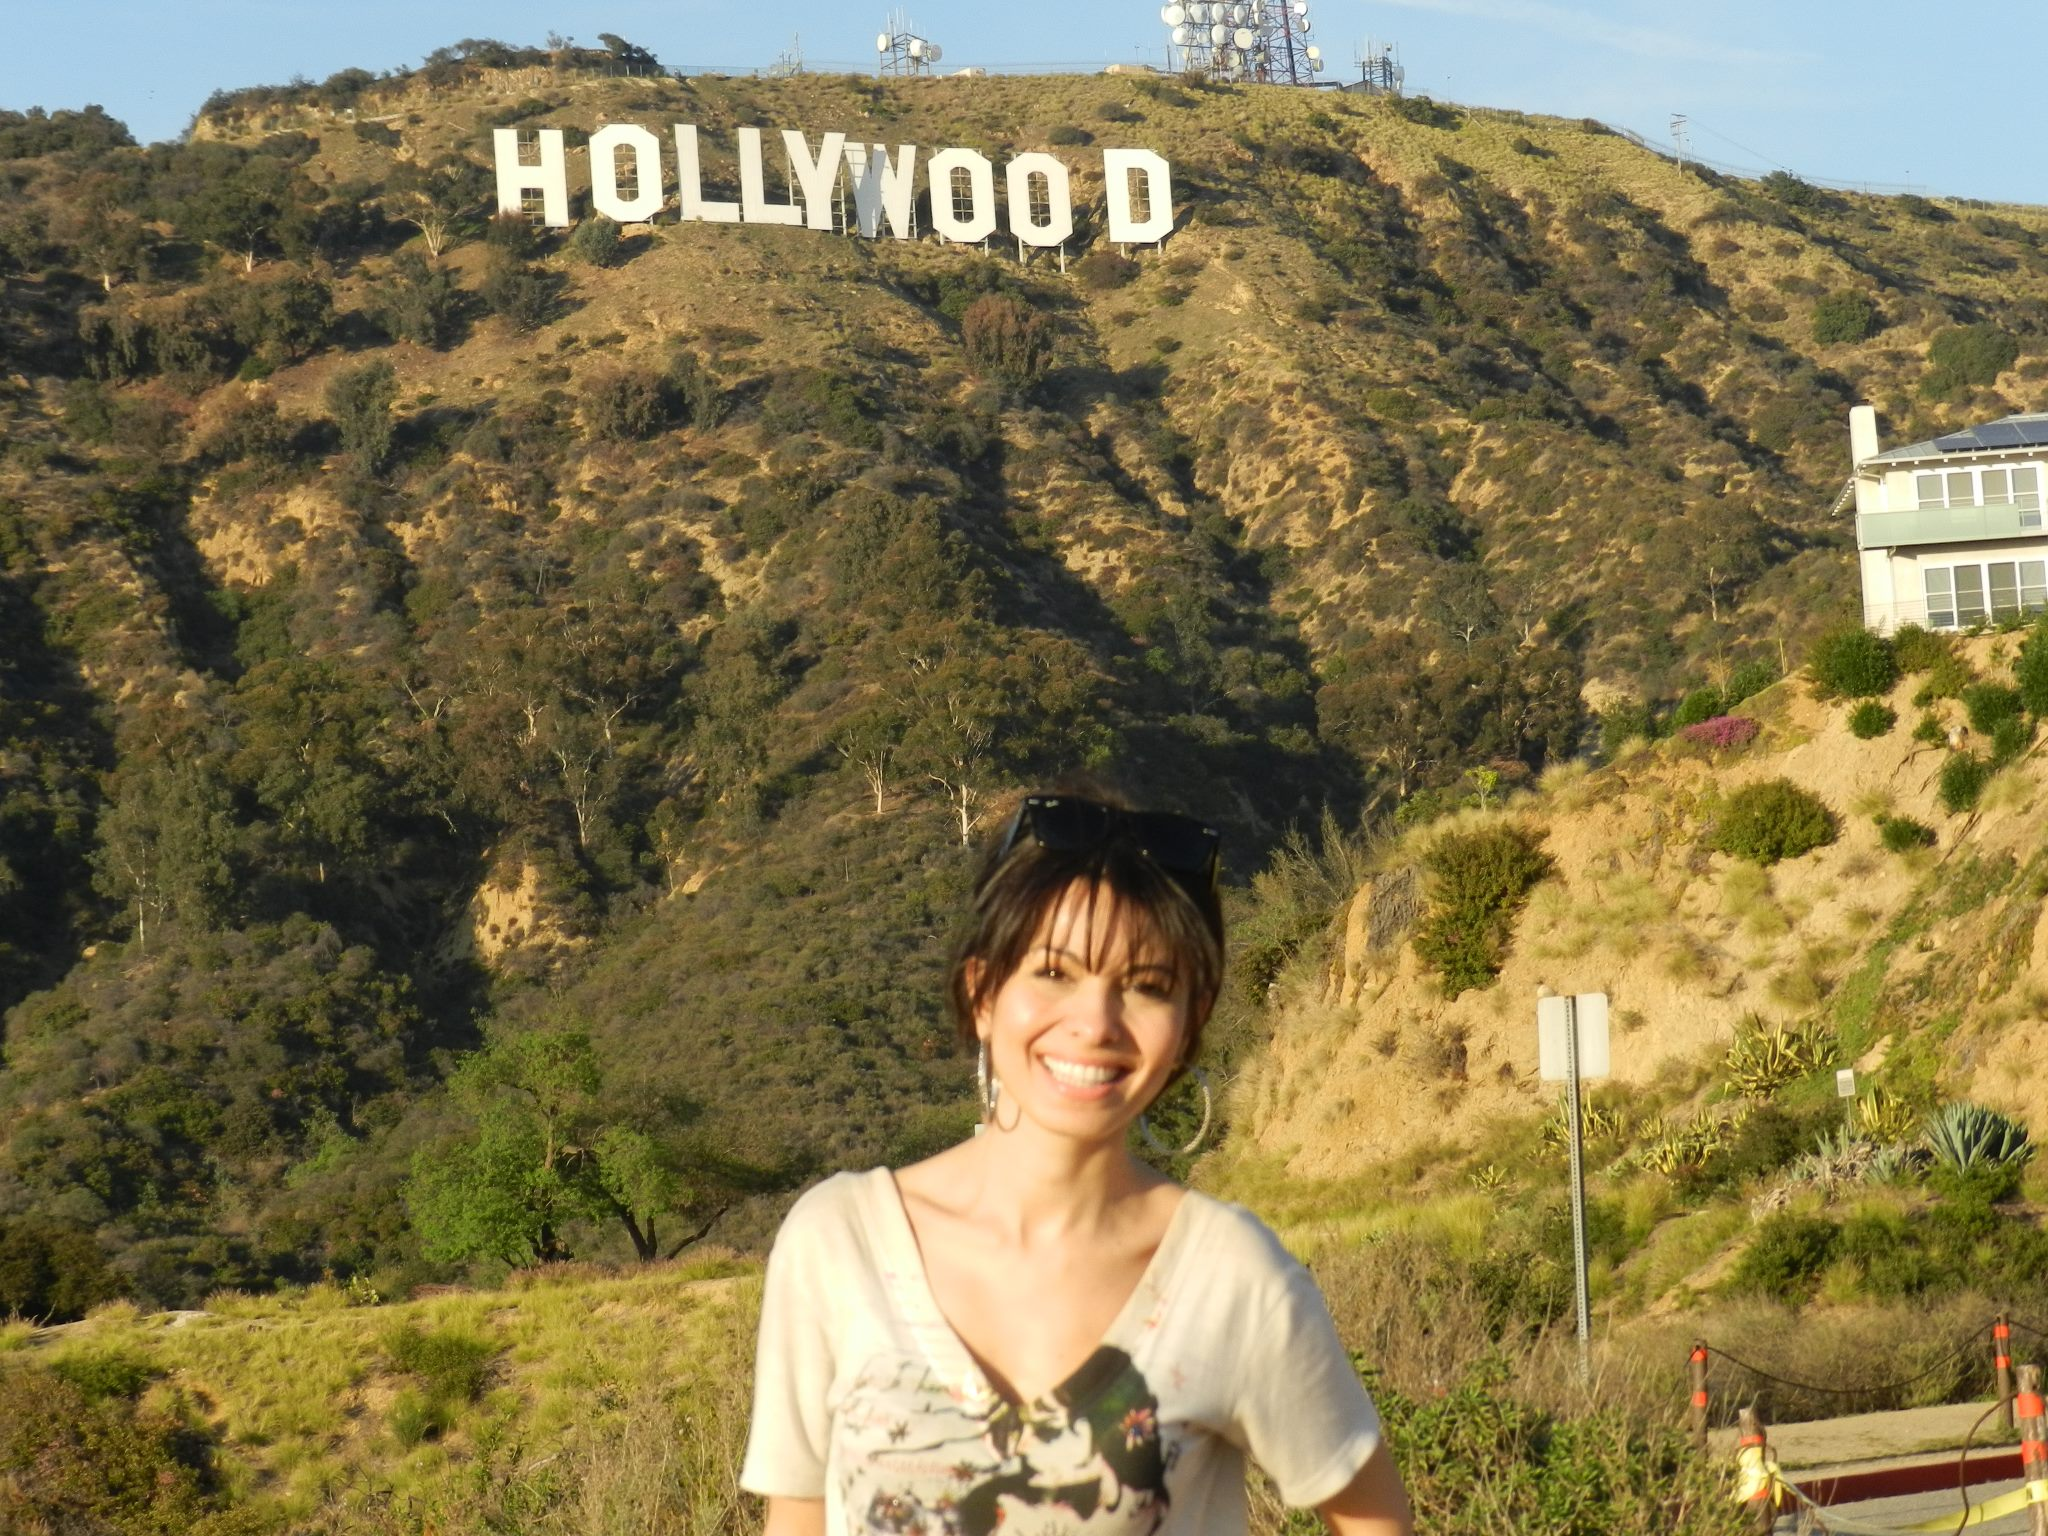 Maria in Hollywood